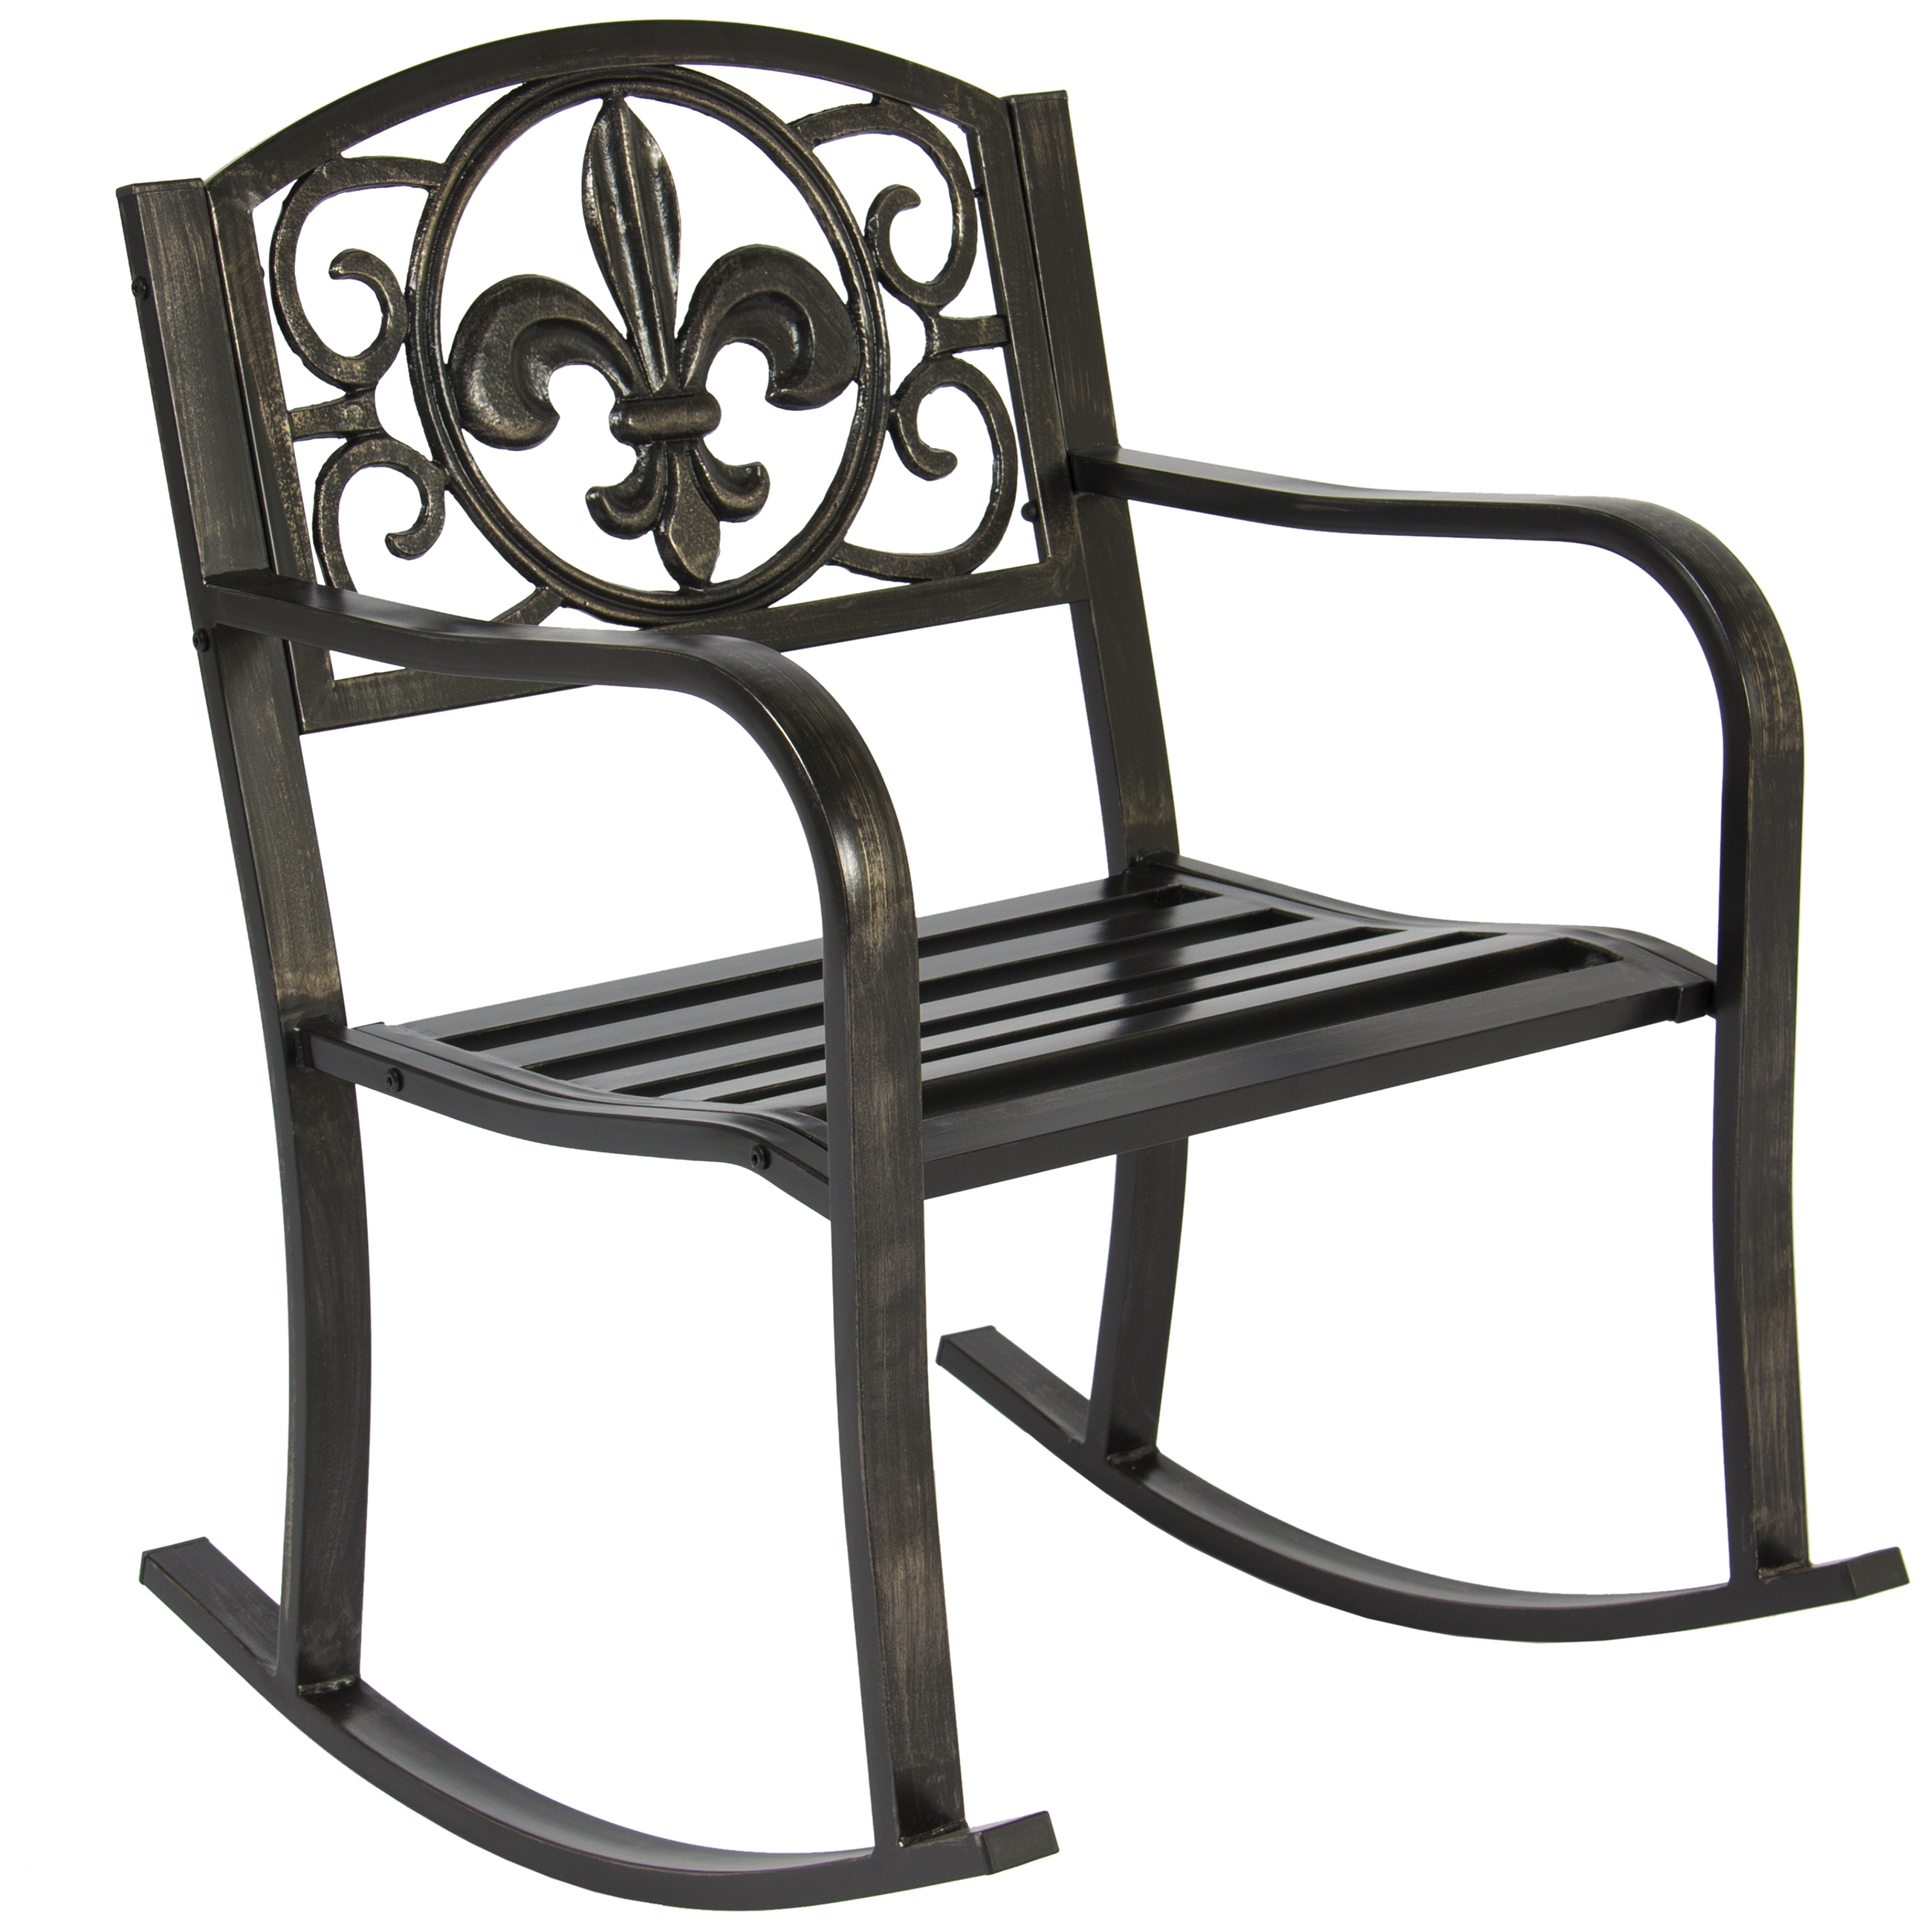 Best Choice Products Metal Rocking Chair Seat For Patio, Porch, Deck Throughout Inexpensive Patio Rocking Chairs (#1 of 15)